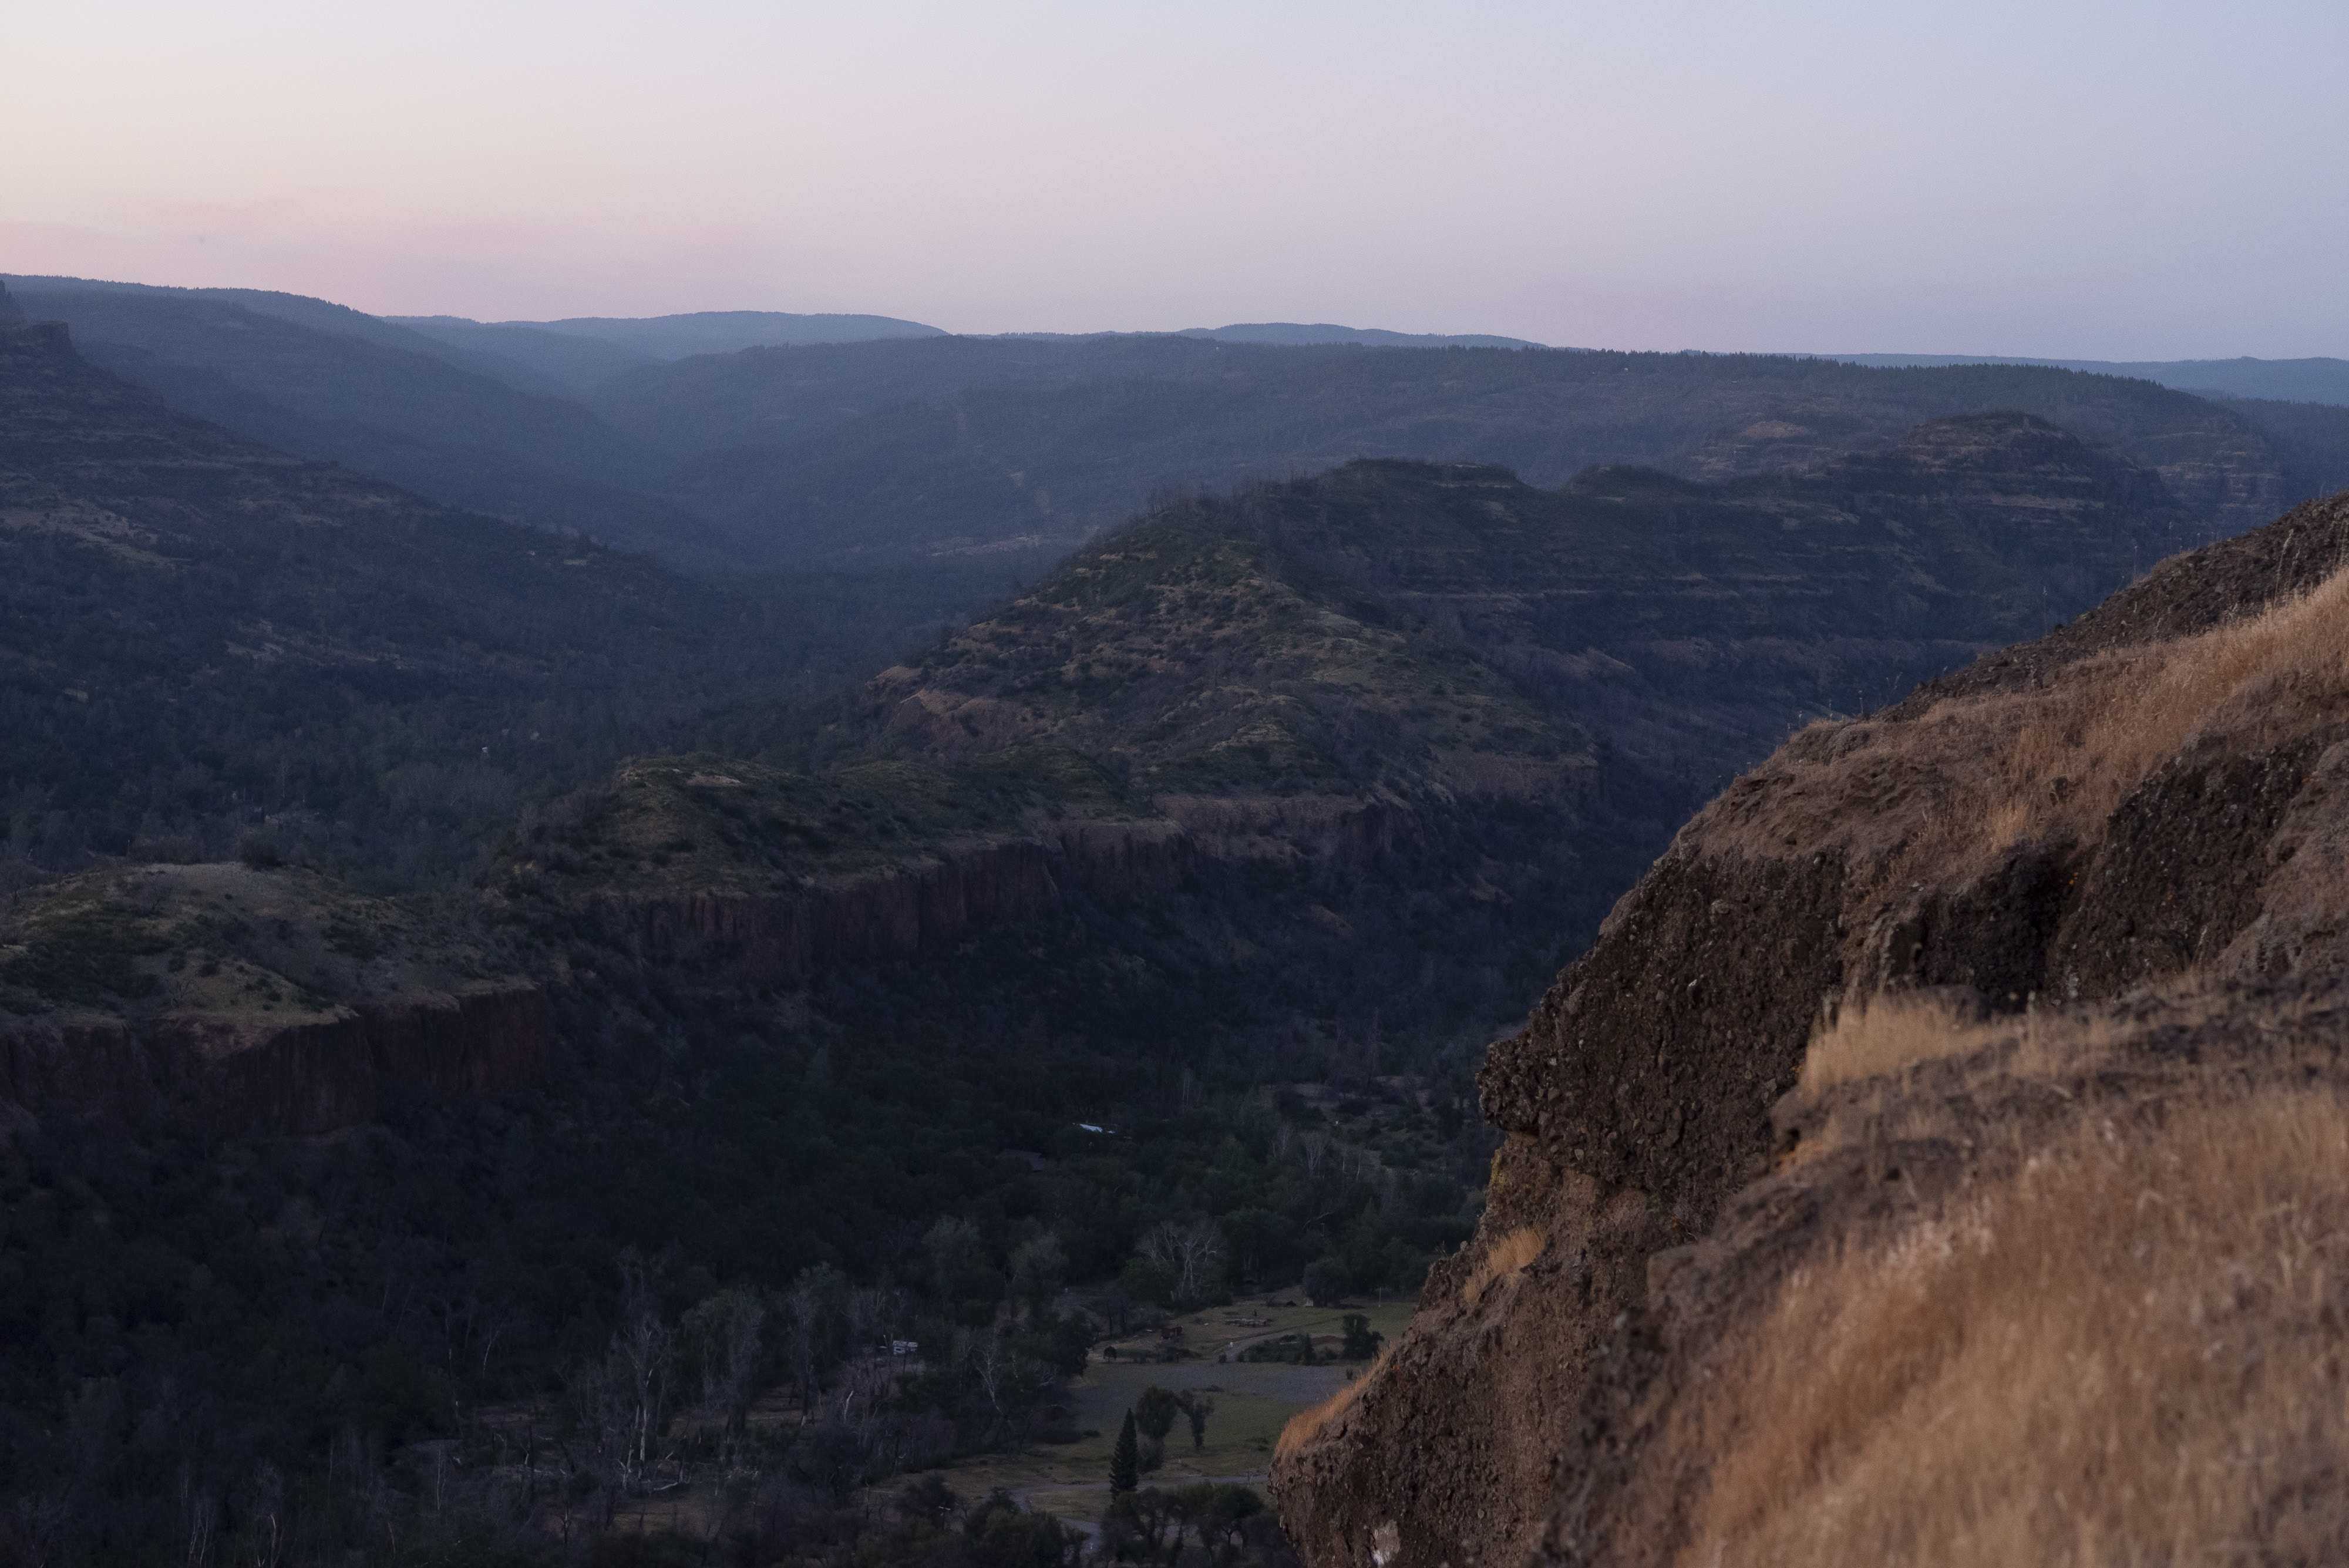 A view of Butte Creek Canyon, which burned in the Camp Fire, from Lookout Point on the Skyway just outside Chico, Calif. on Tuesday May 4, 2021.  Salgu Wissmath for The Intercept